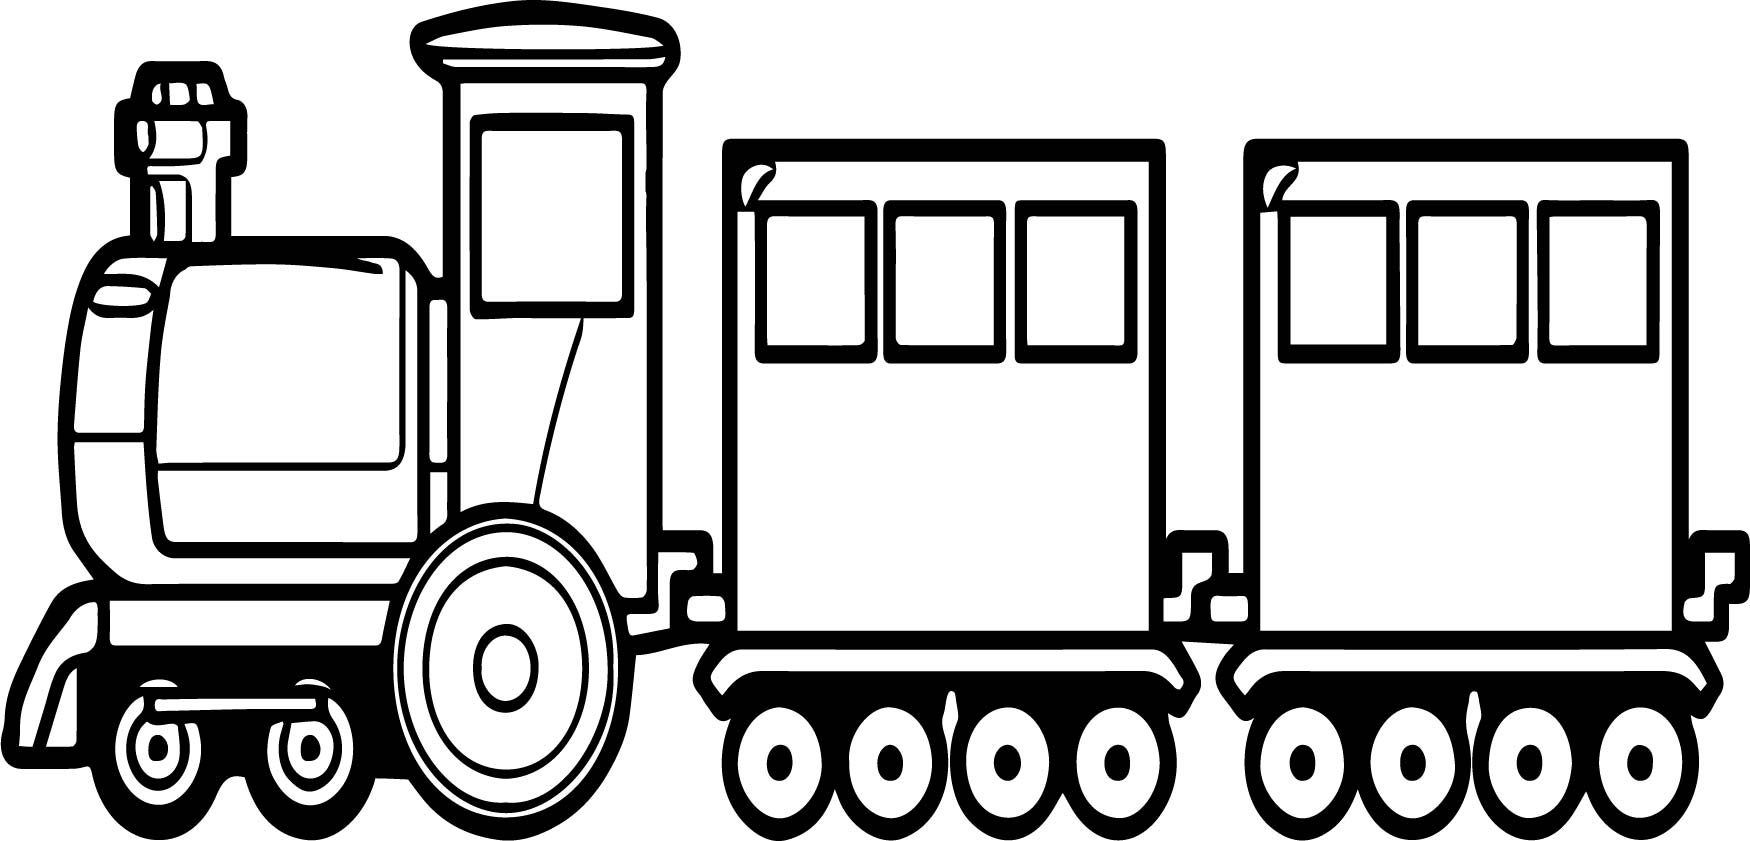 coloring train pages cool cartoon one train coloring page train coloring coloring train pages